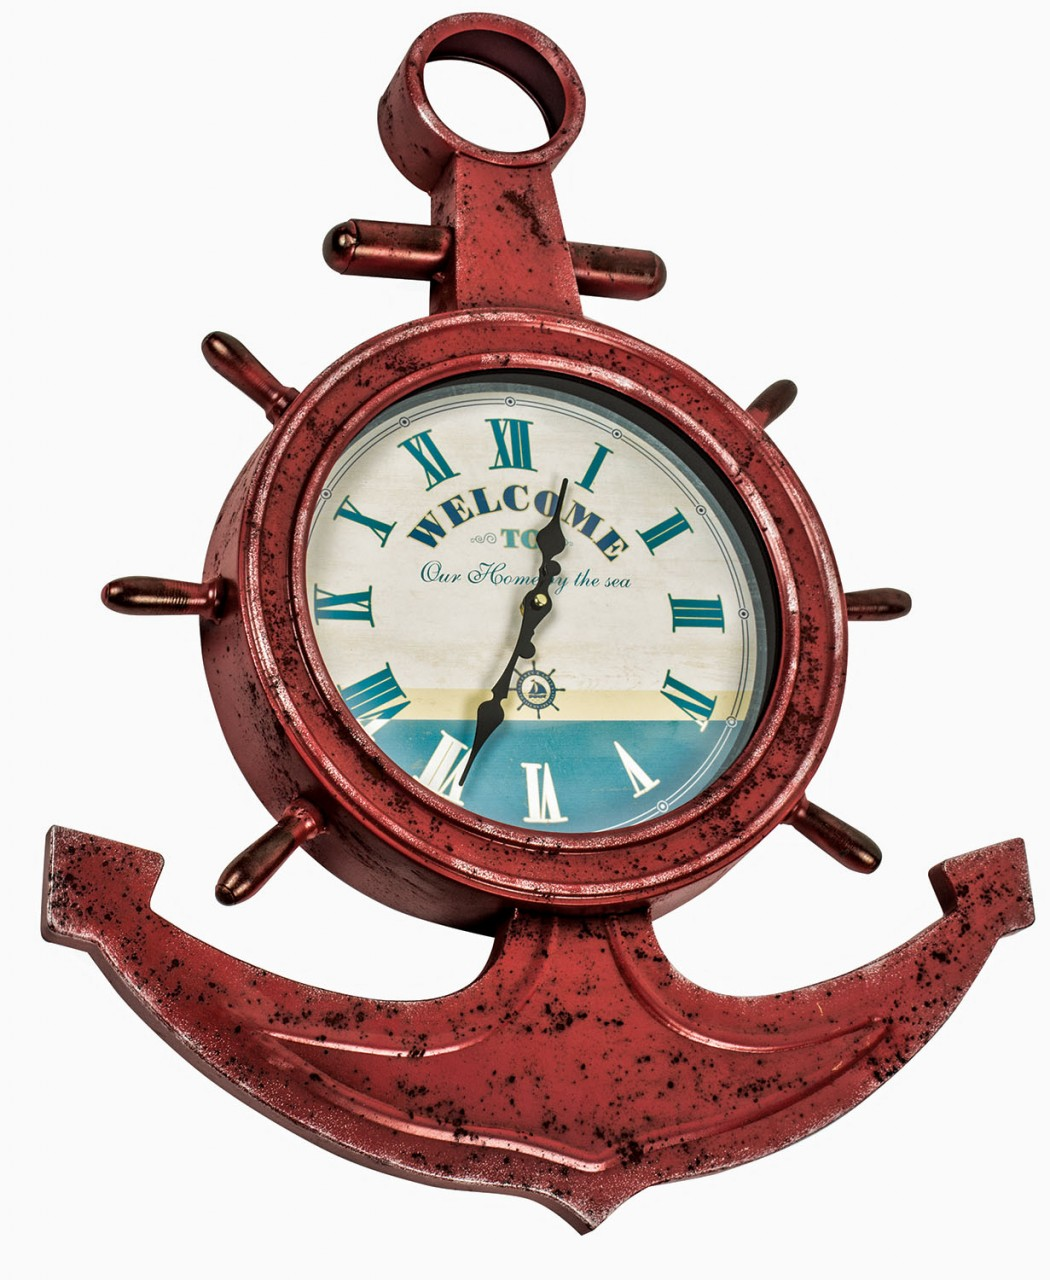 Nautical wall clocks uk vintage style wall clocks divine interiors and gifts amipublicfo Images